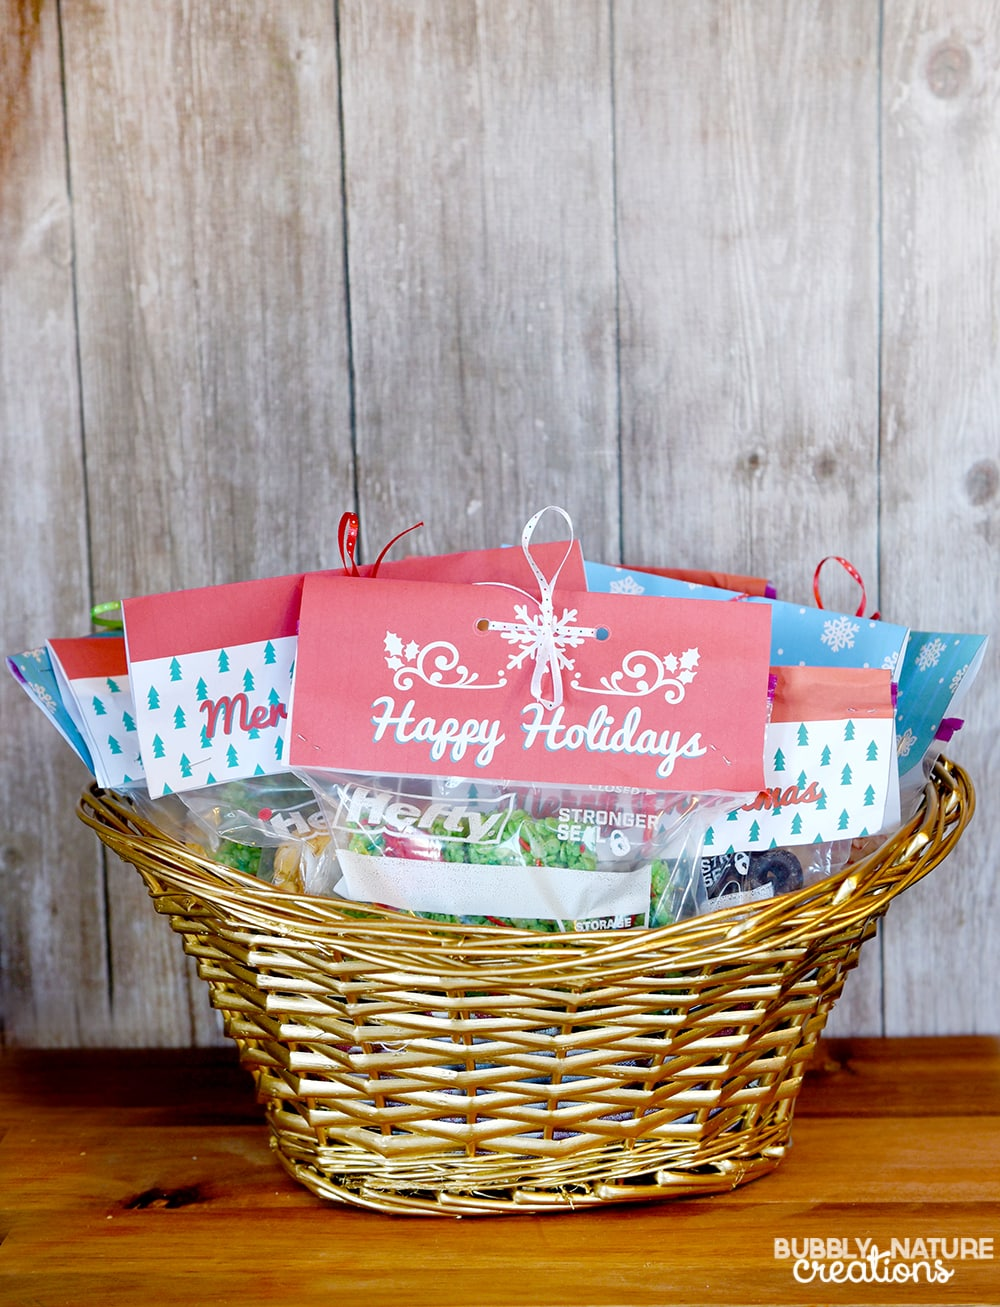 Easy Hefty Bag Toppers 4 Holiday gifts!!